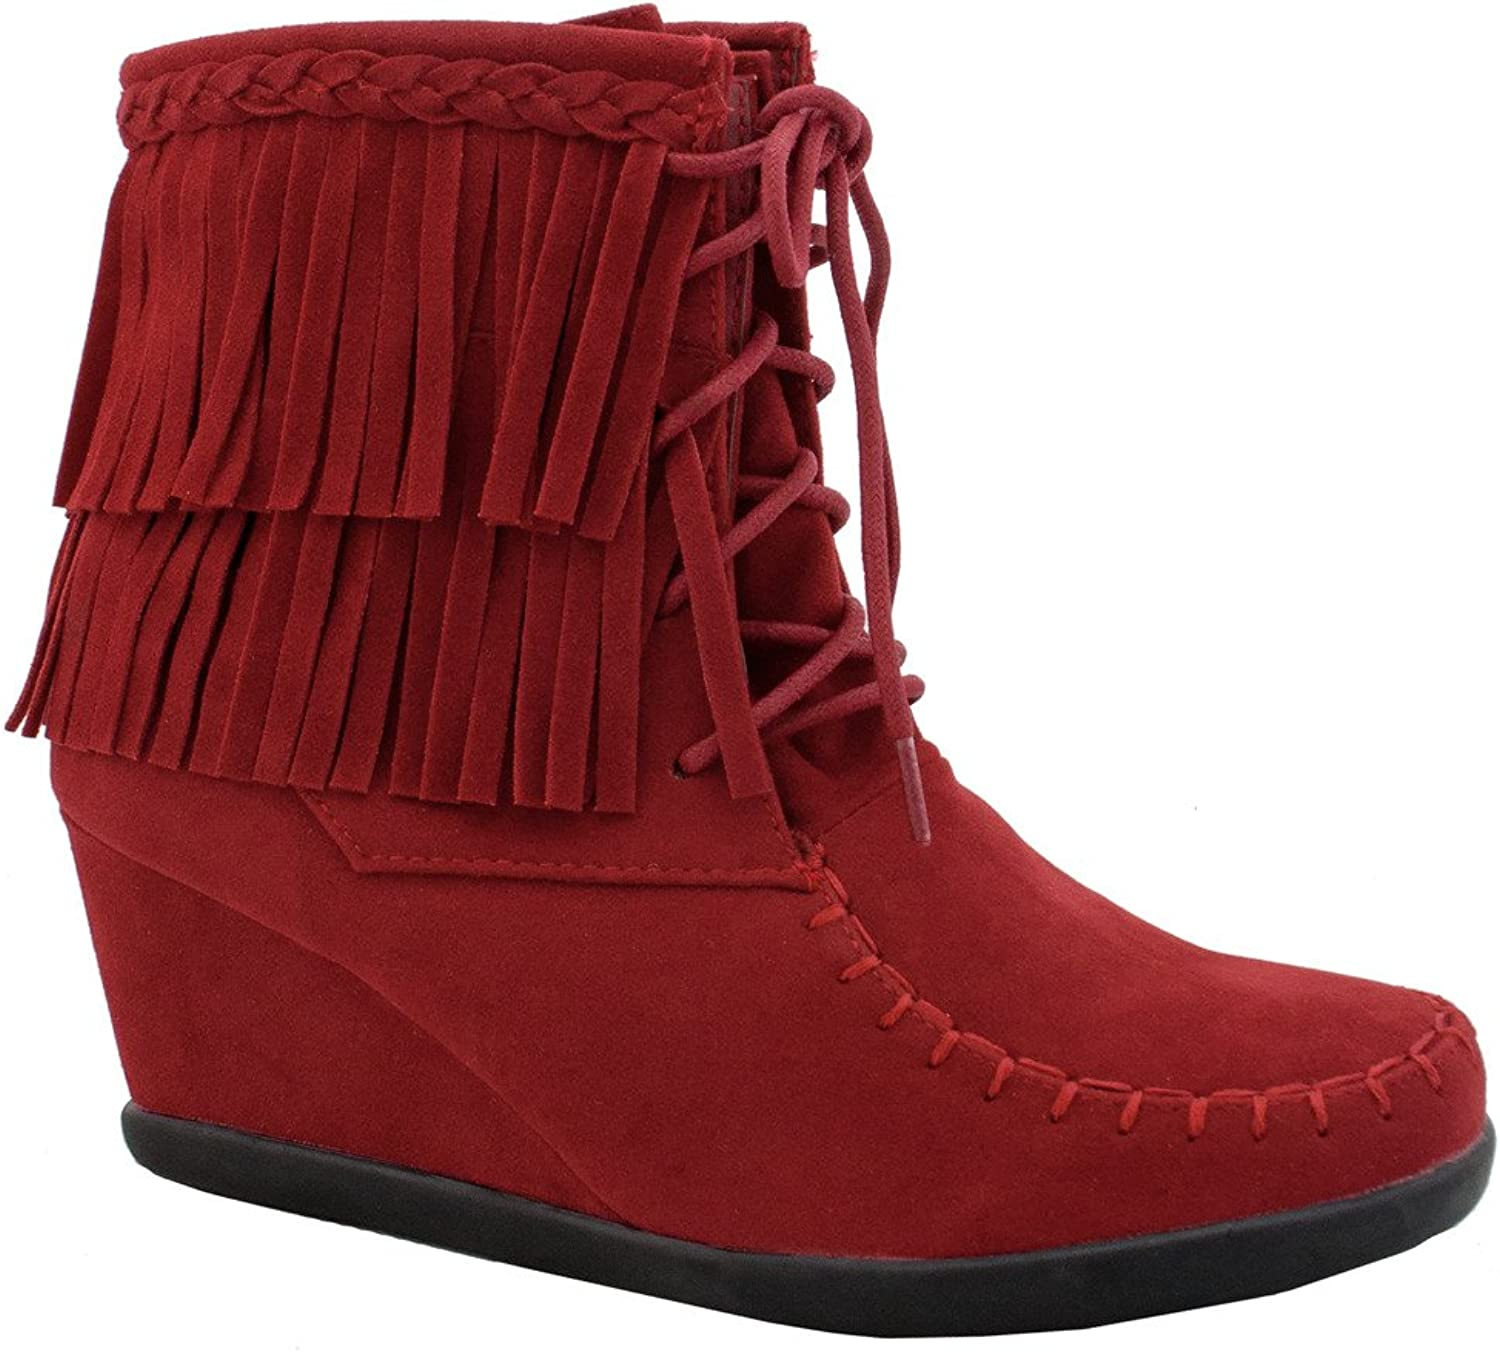 Women's Two Layered Tassel Moccasin Lace Up Fashion Ankle Wedge Bootie